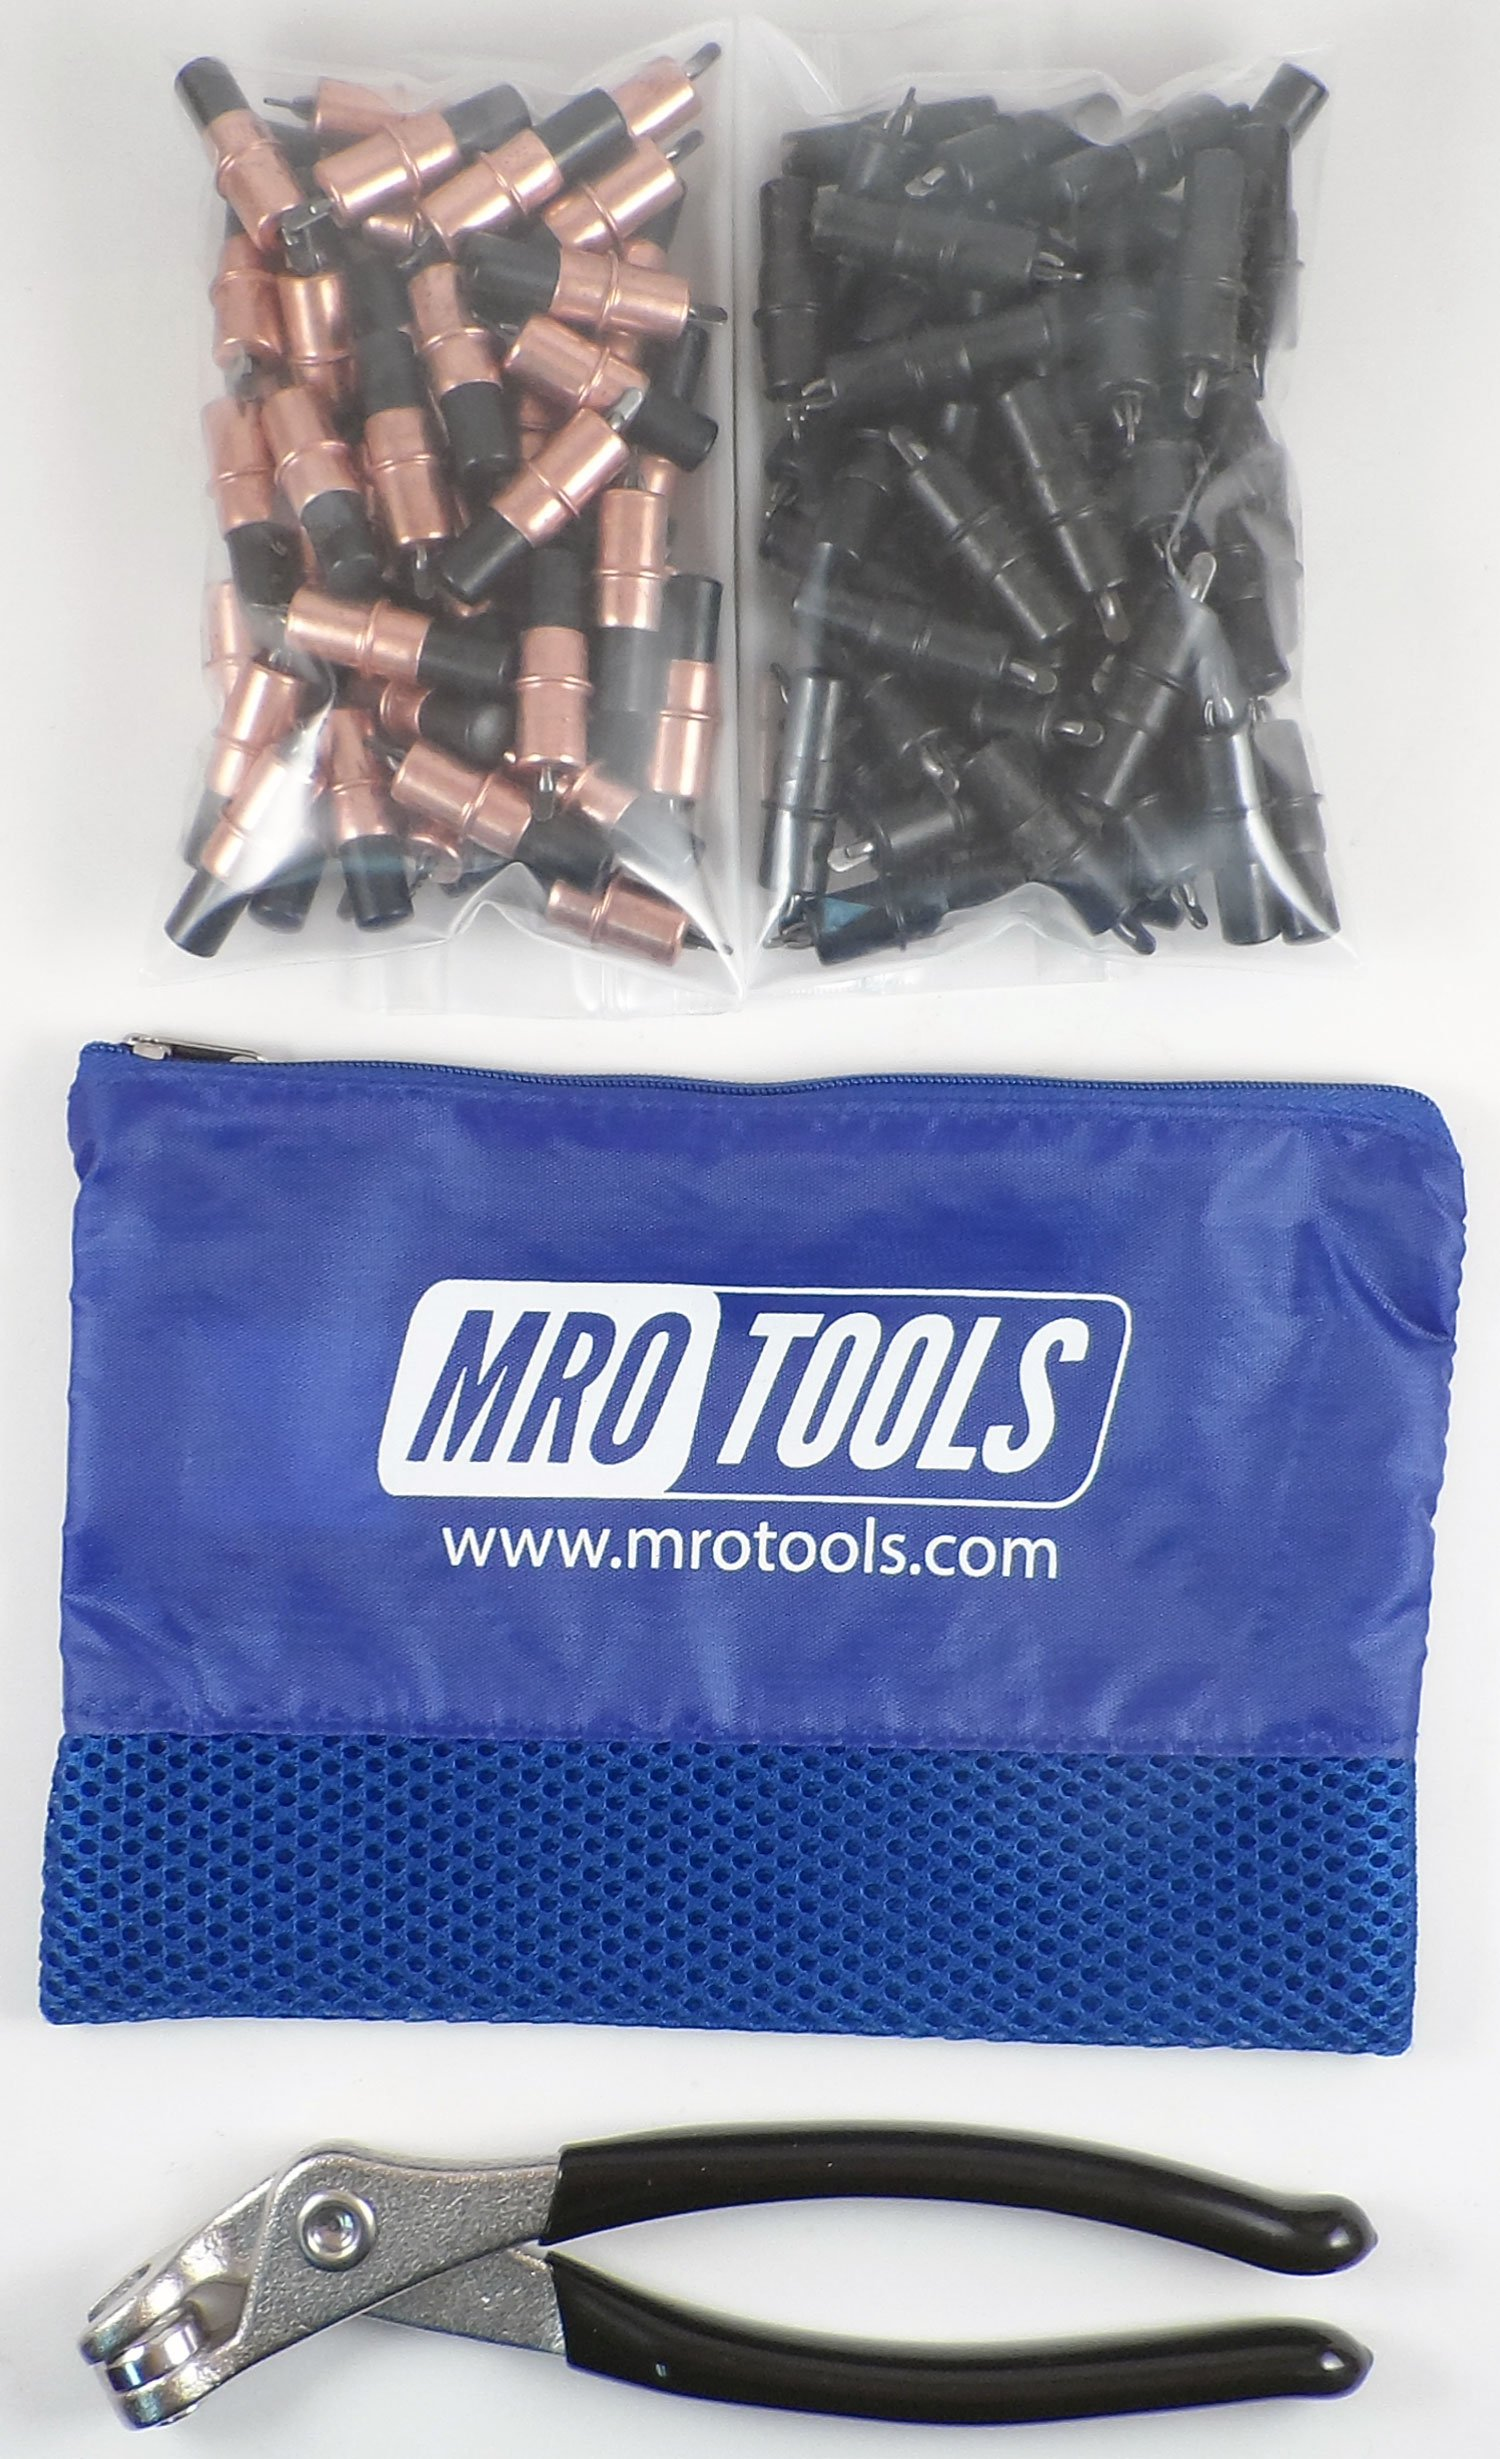 50 1/8 & 50 5/32 Extra Short Cleco Fasteners + Pliers w Mesh Bag (KK4S100-2)